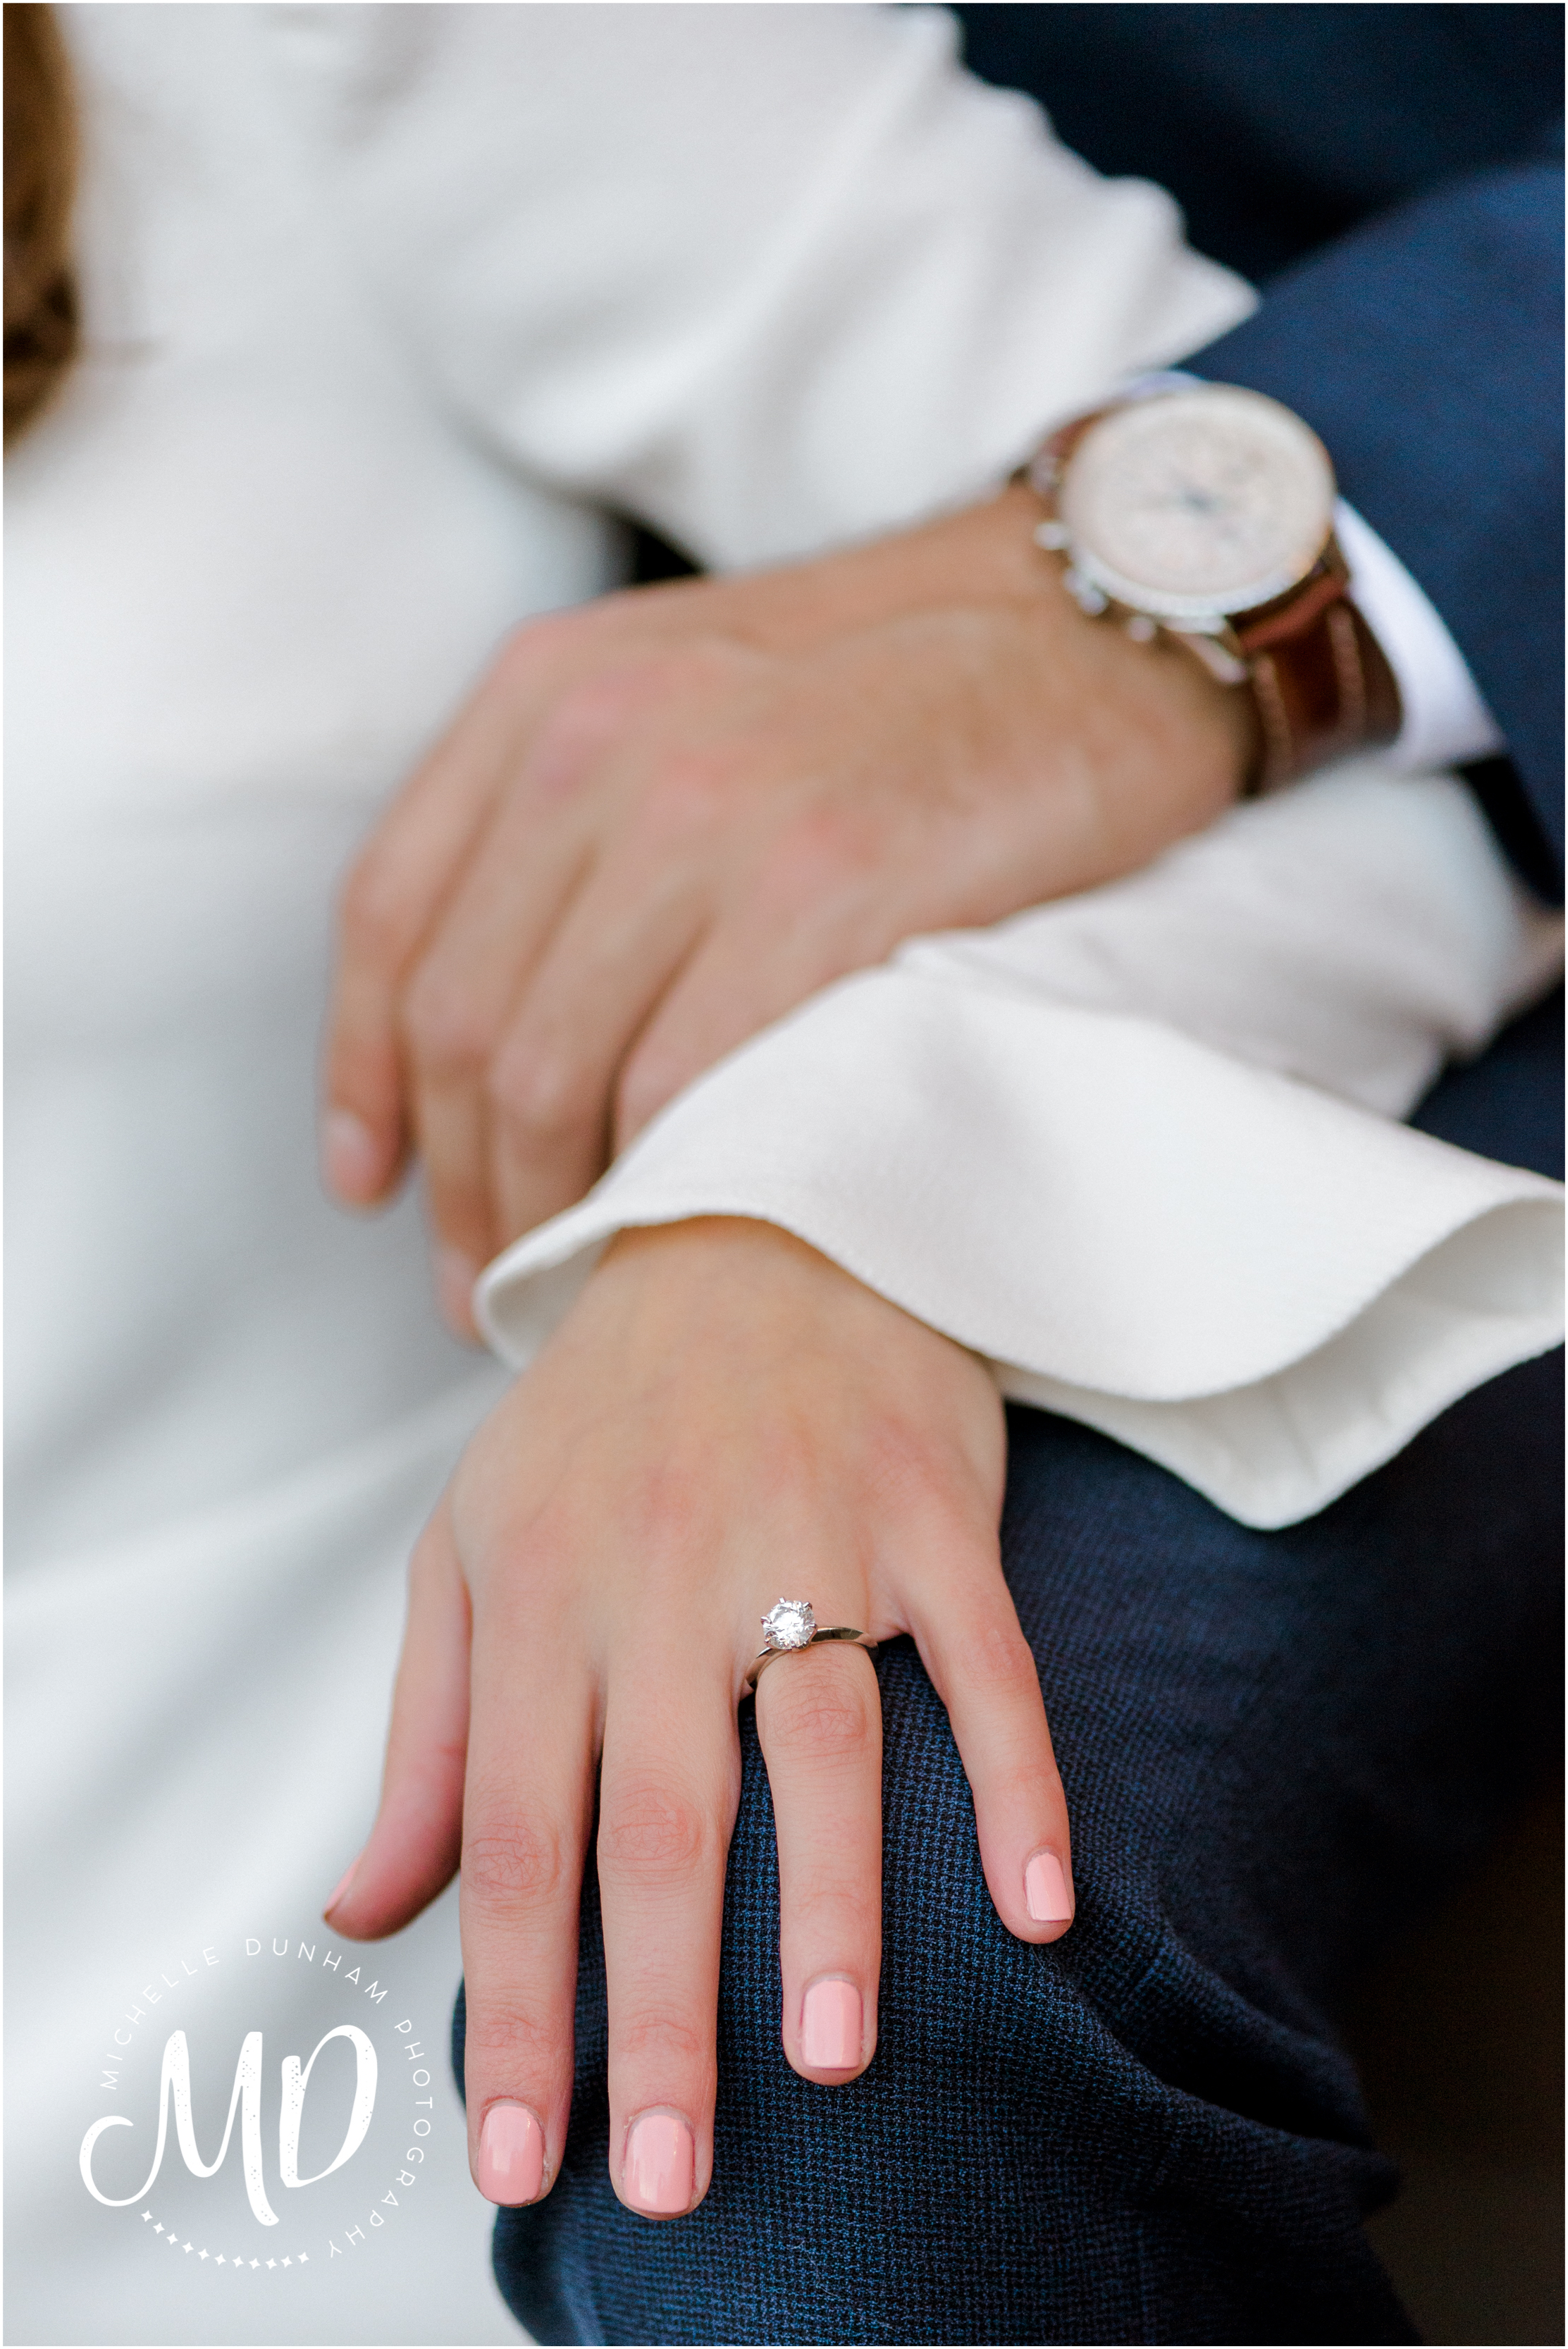 Michelle-Dunham-Photography-Engagement-South-End-Boston-26.jpg